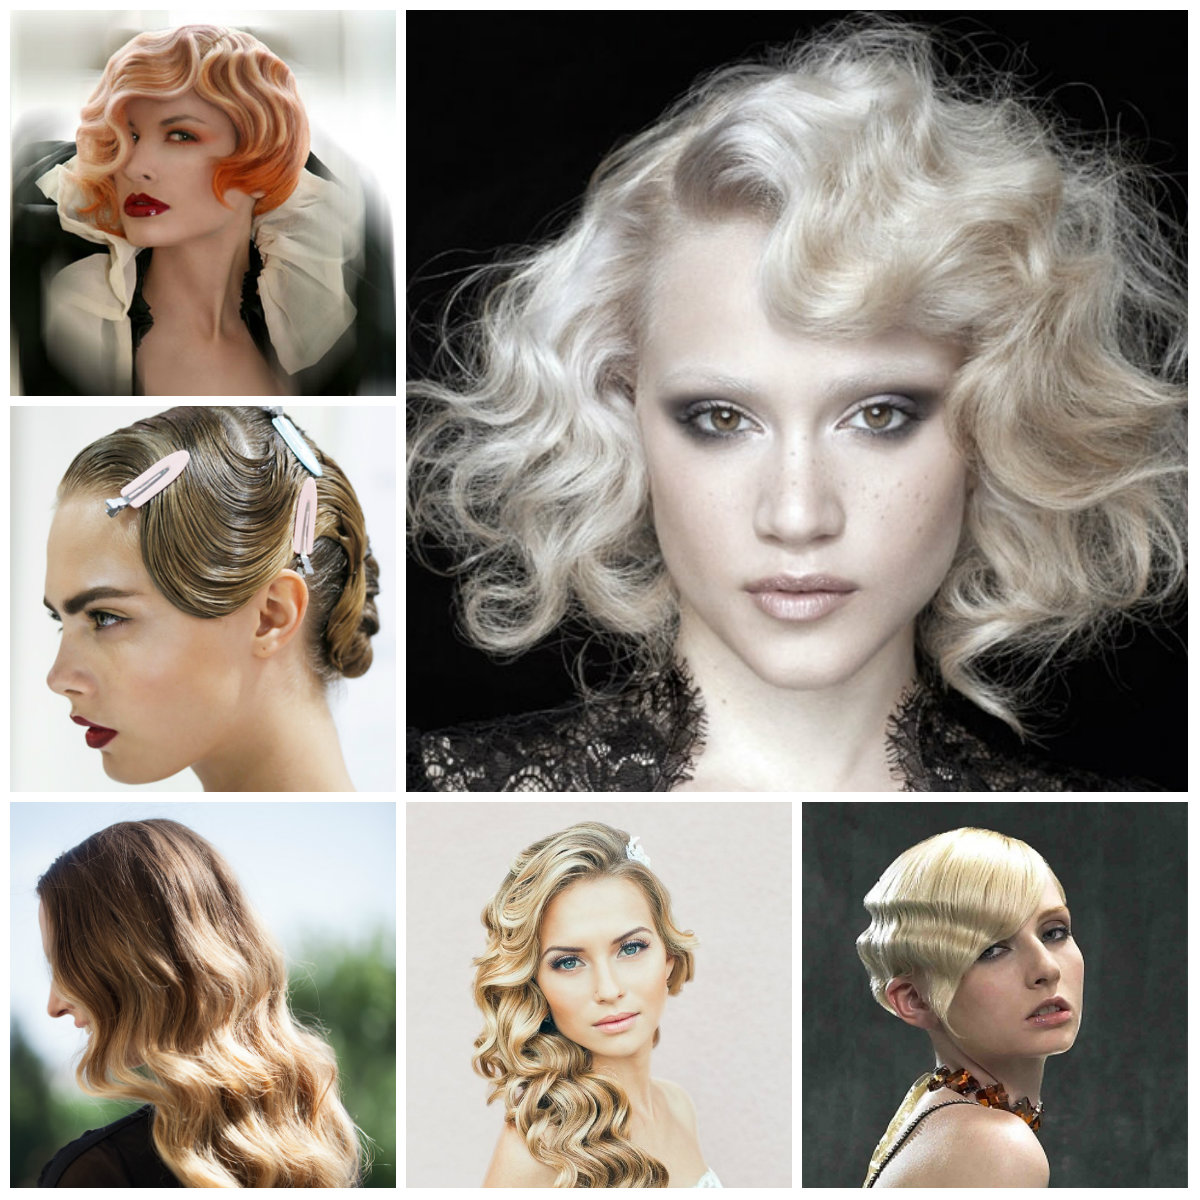 Phenomenal Retro Finger Wave Hairstyles 2016 2017 Haircuts Hairstyles And Short Hairstyles For Black Women Fulllsitofus